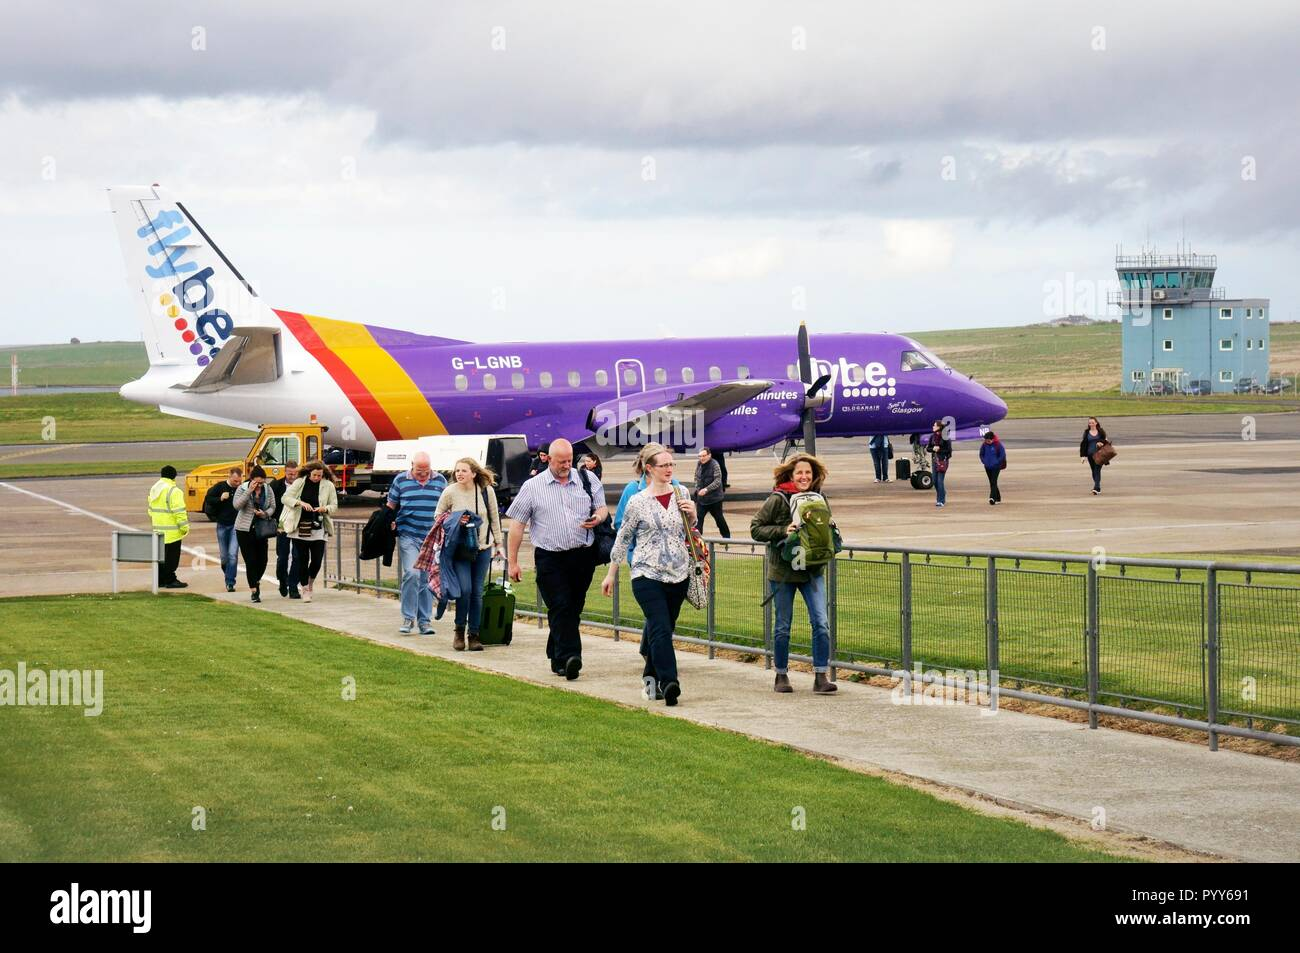 Flybe passenger plane prop aircraft airplane on runway apron passengers arriving at arrival gate at Kirwall Airport, Orkney Islands, Scotland, UK - Stock Image